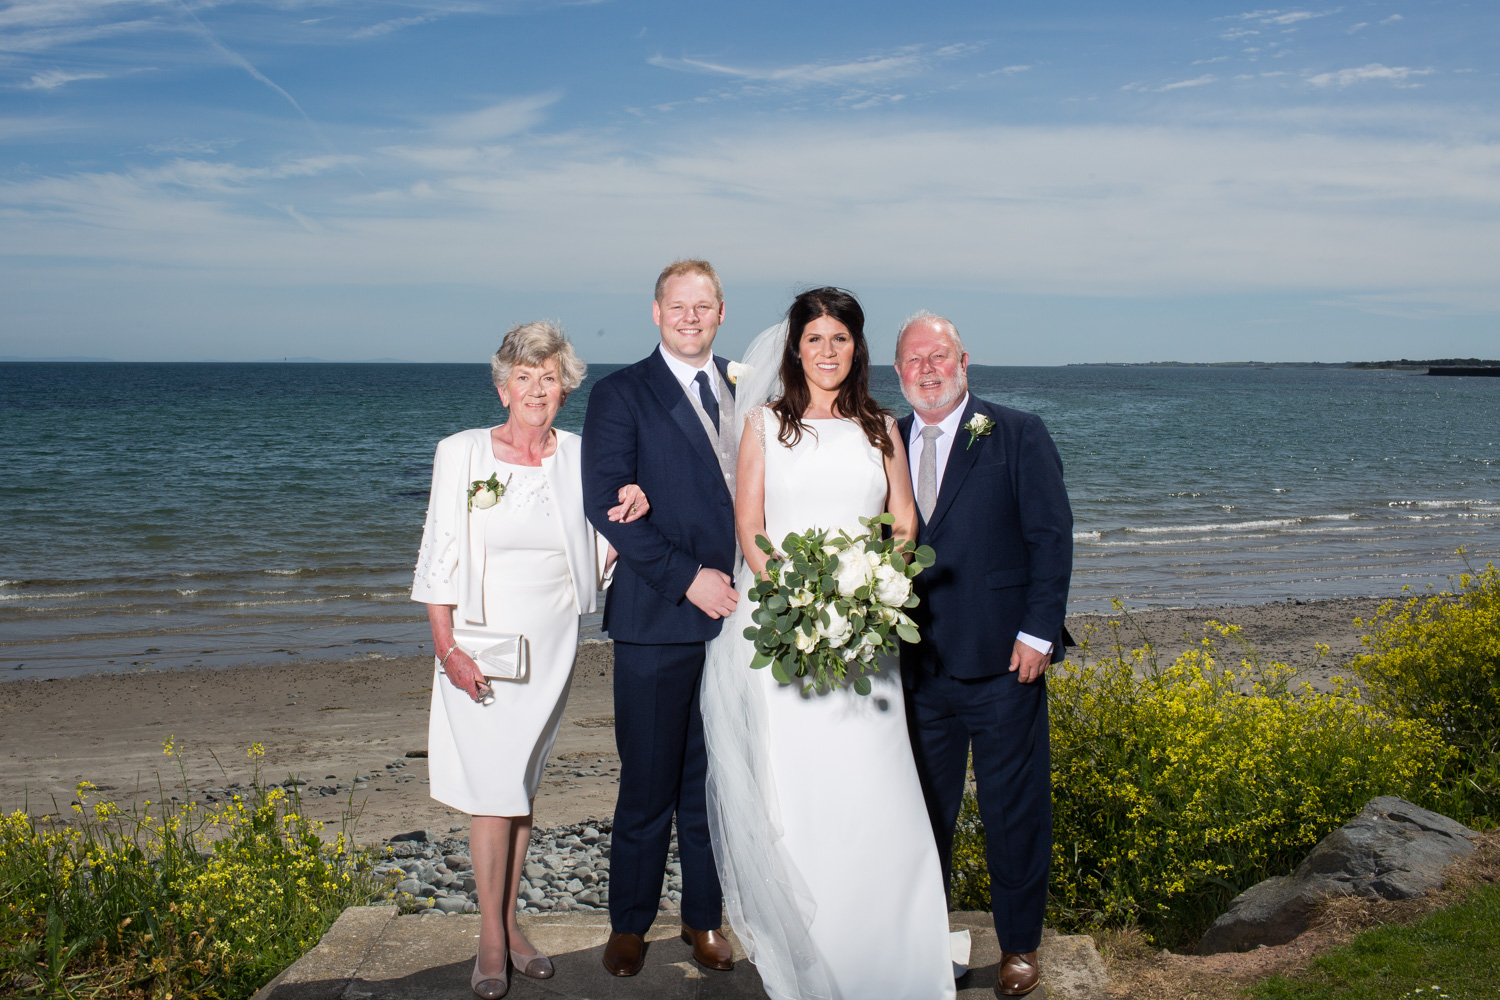 Mark_Barnes_Northern_Ireland_wedding_photographer_Kilmore_House_Wedding_photography_Kilmore_House_wedding_photographer-30.jpg